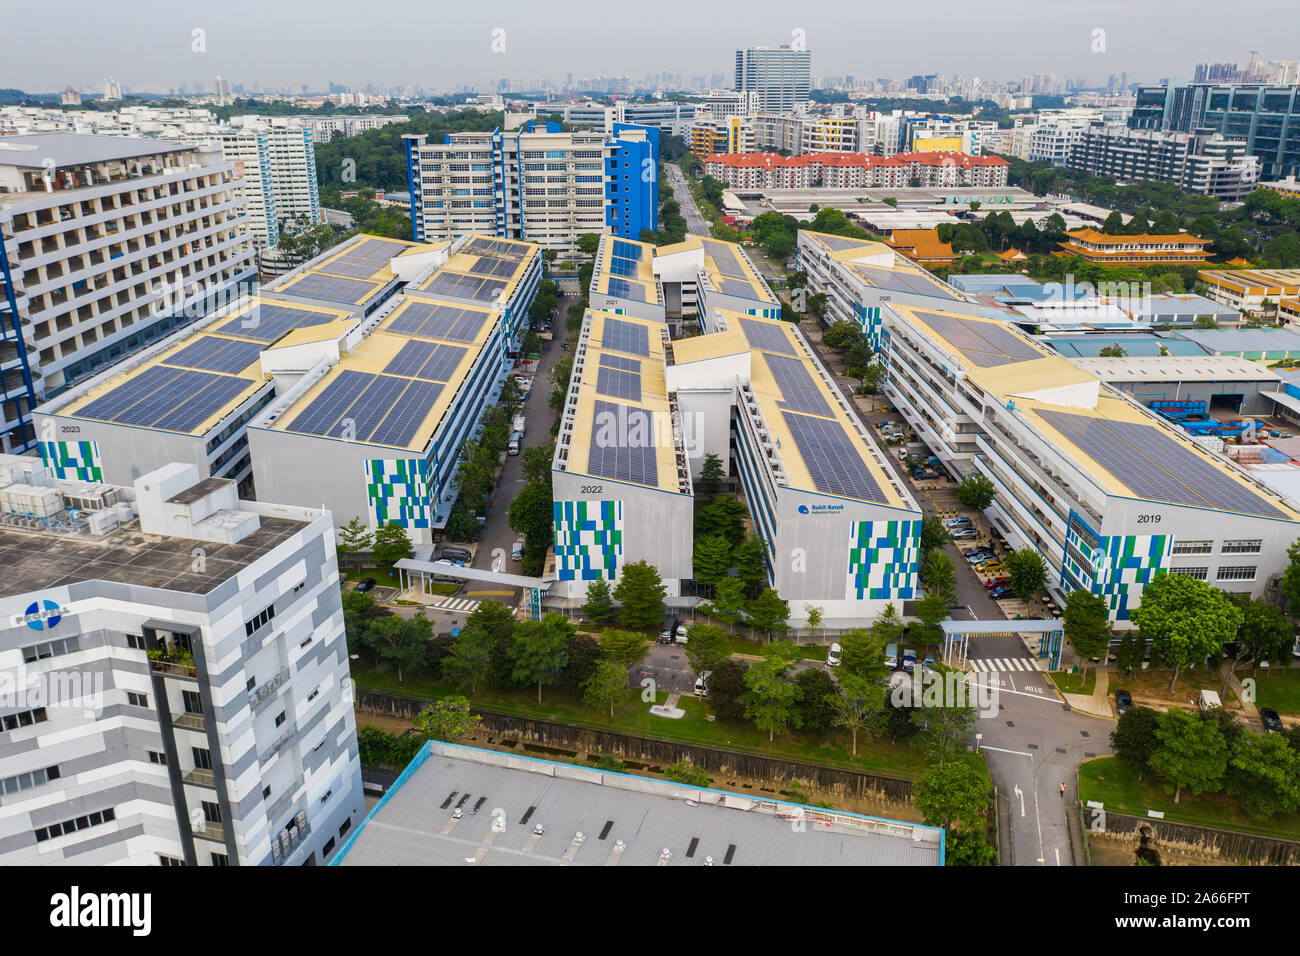 solar-panels-on-the-roof-of-factories-fr